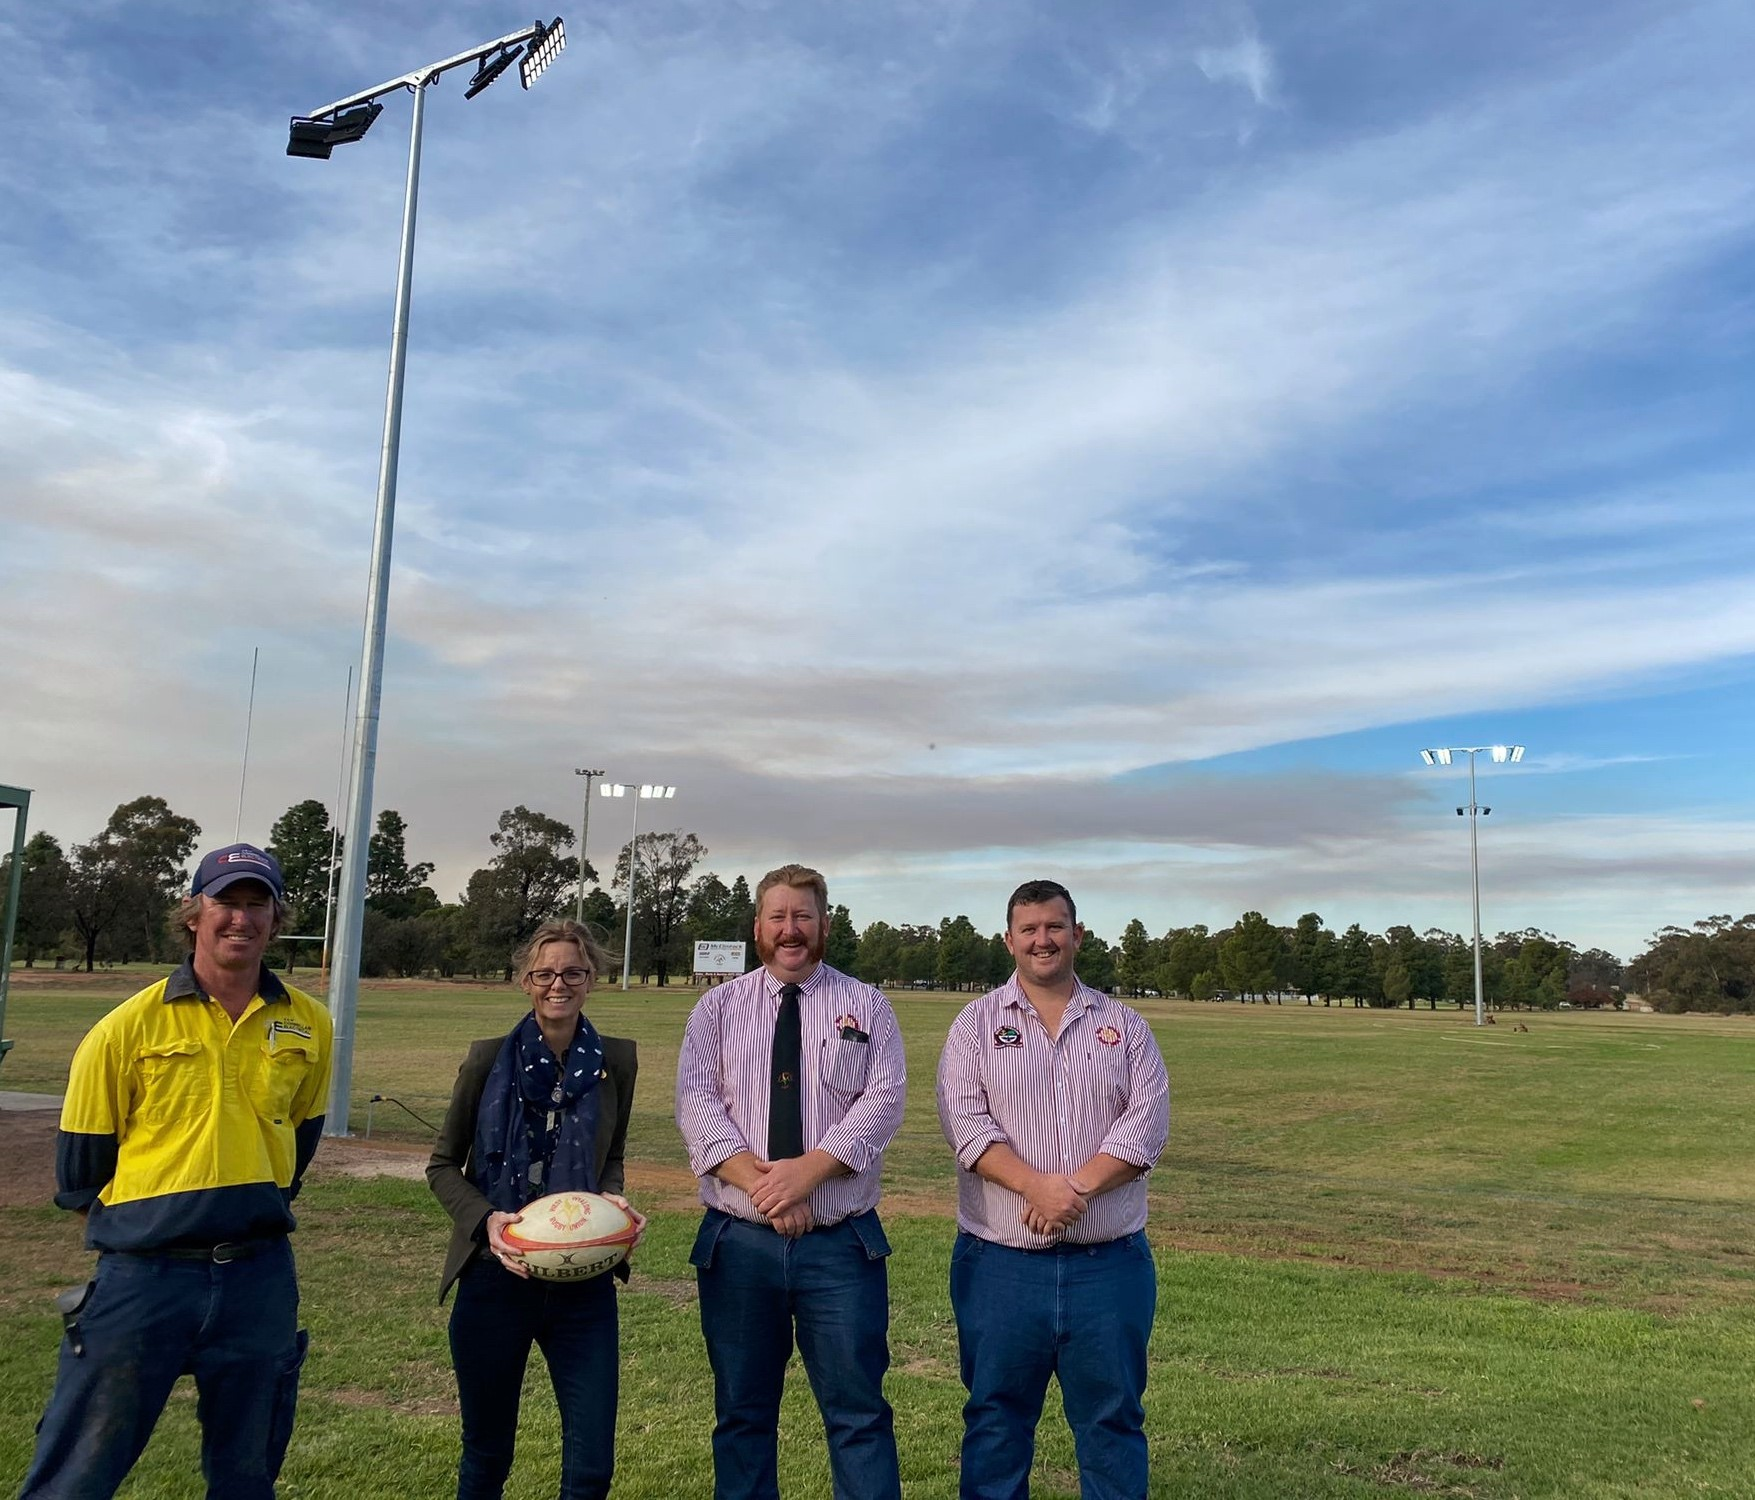 Andrew Connellan, Steph Cooke MP, Kyle Sturgess and Nick Hunt stand in front of new lighting towers at the West Wyalong Rugby Club